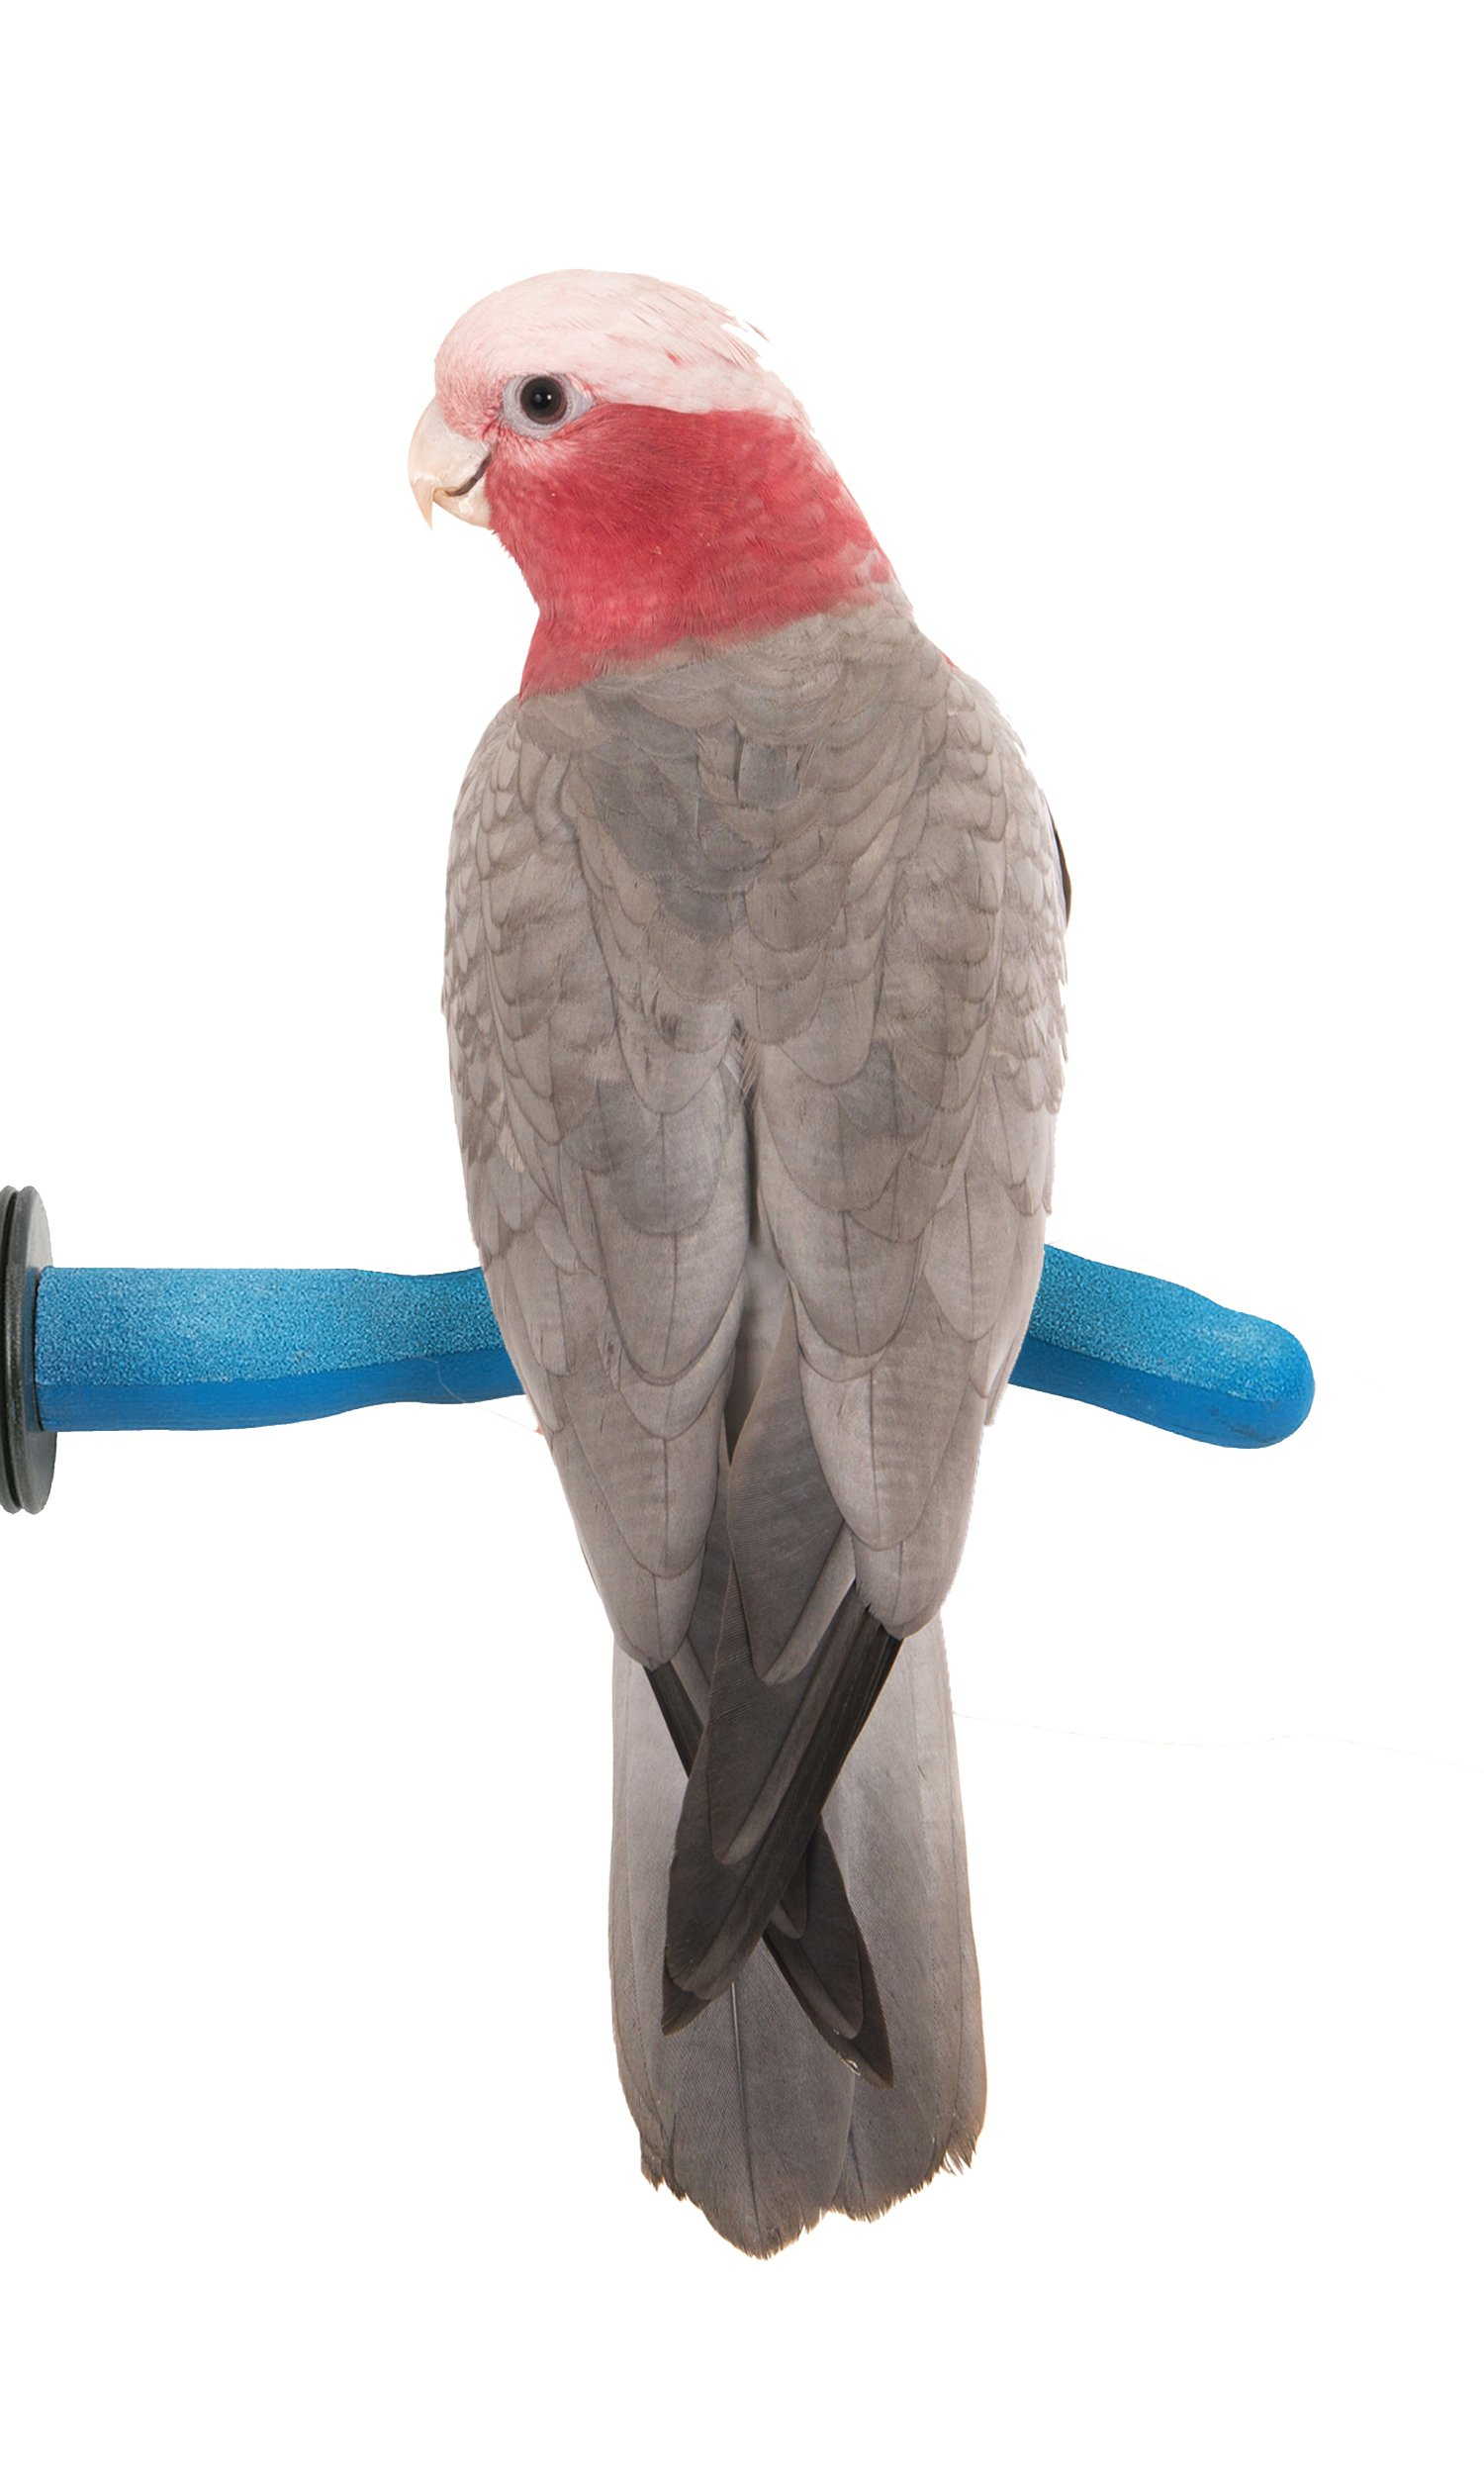 Sweet Feet and Beak Safety Pumice Perch for Birds by Features Real Pumice to Trim Nails and Beak and Promote Healthy Feet - Safe and Non-Toxic, For Bird Cages - [ Medium/Blue ]